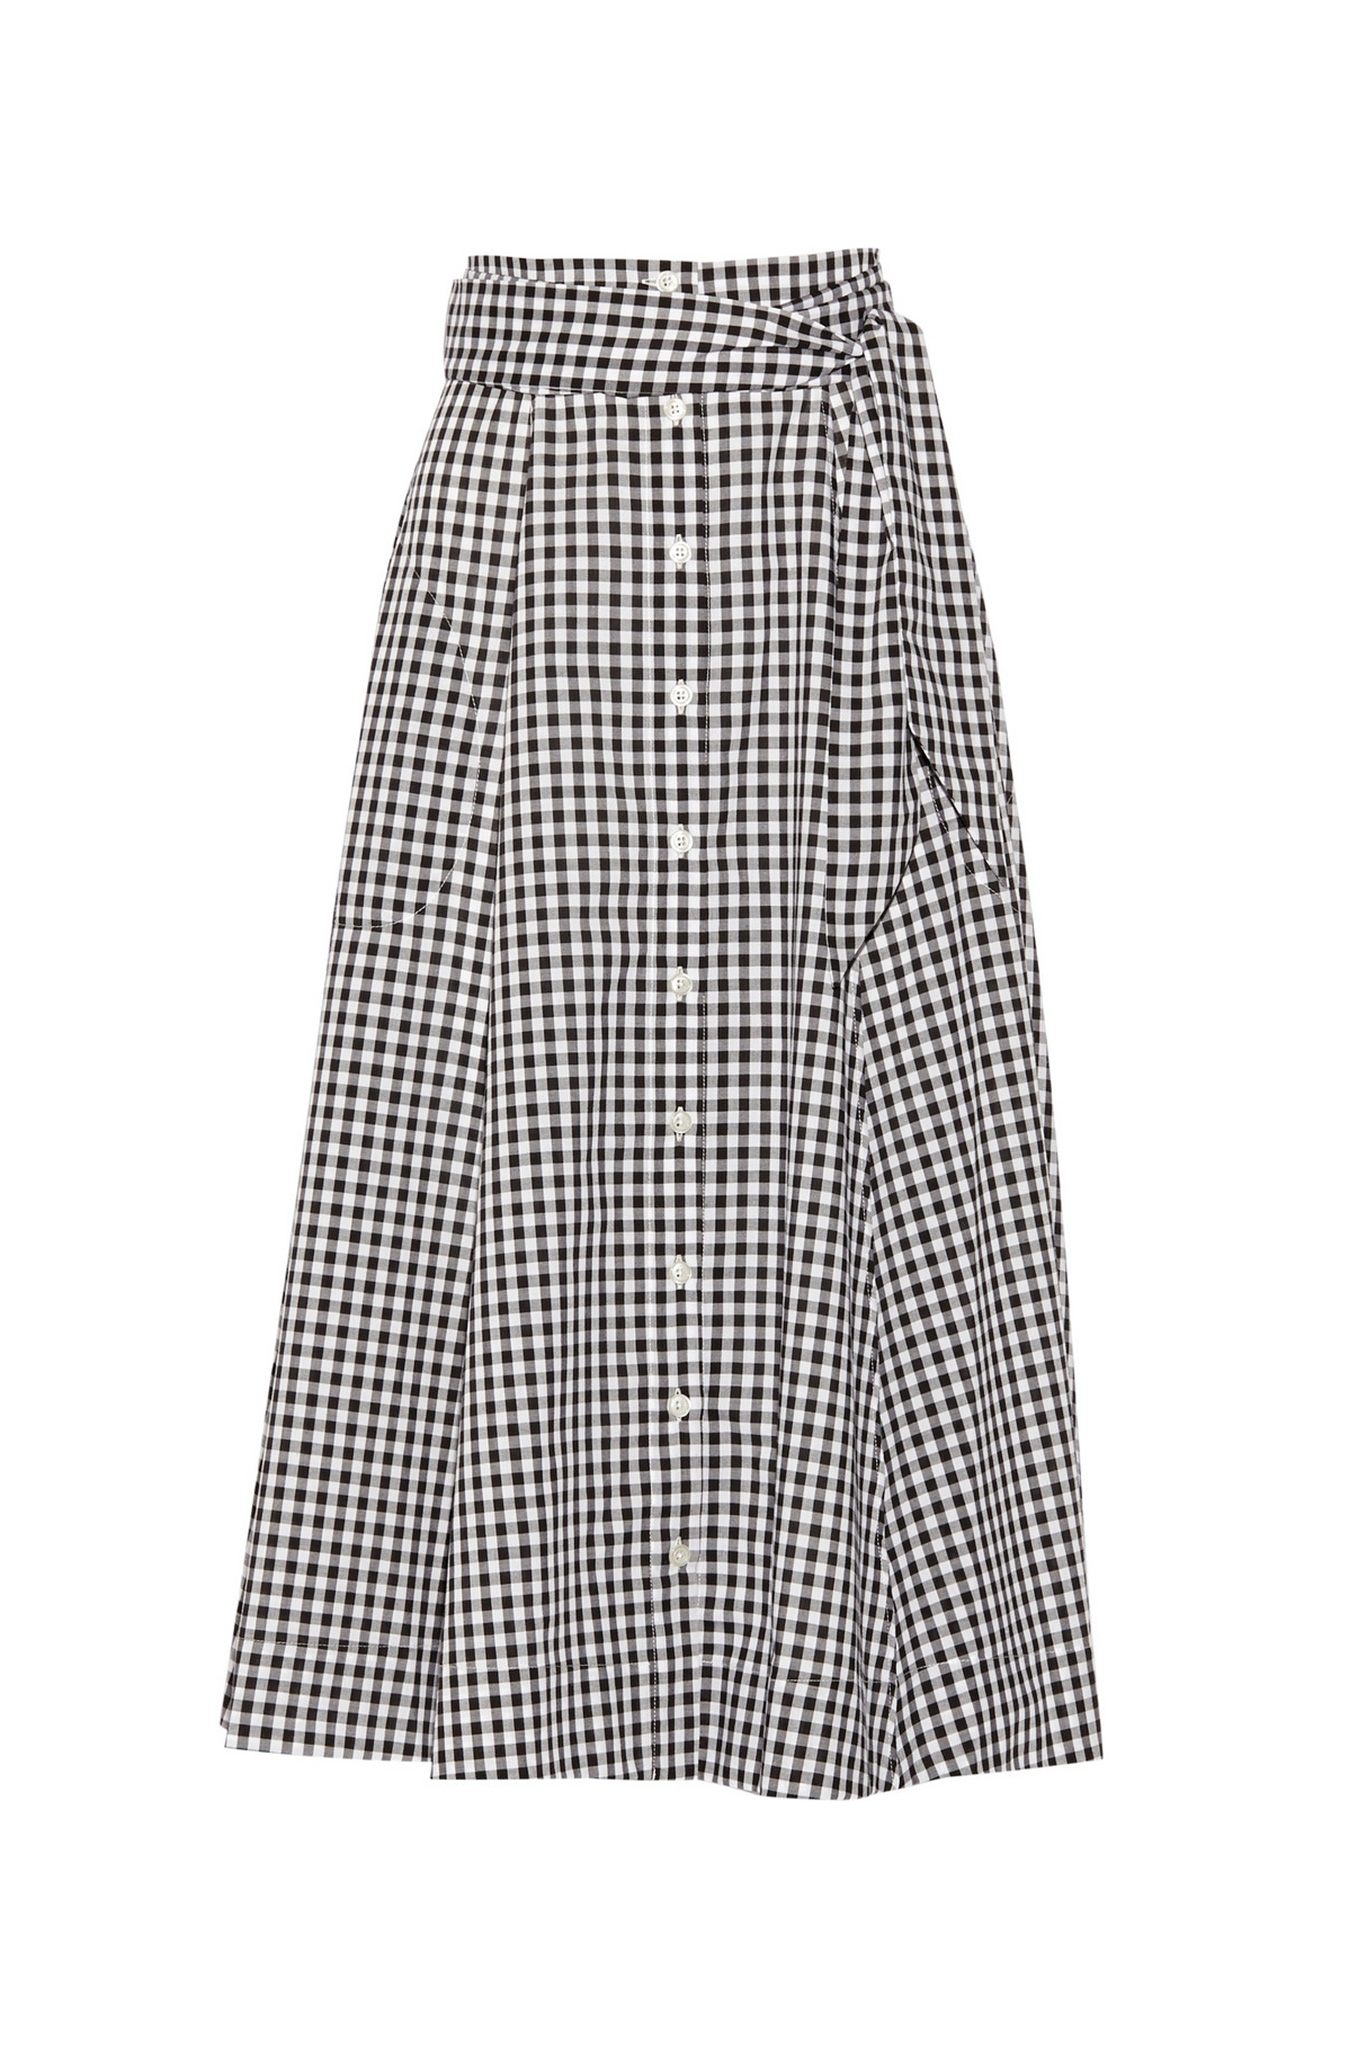 04-07-gingham-spring-shopping-picks.jpg